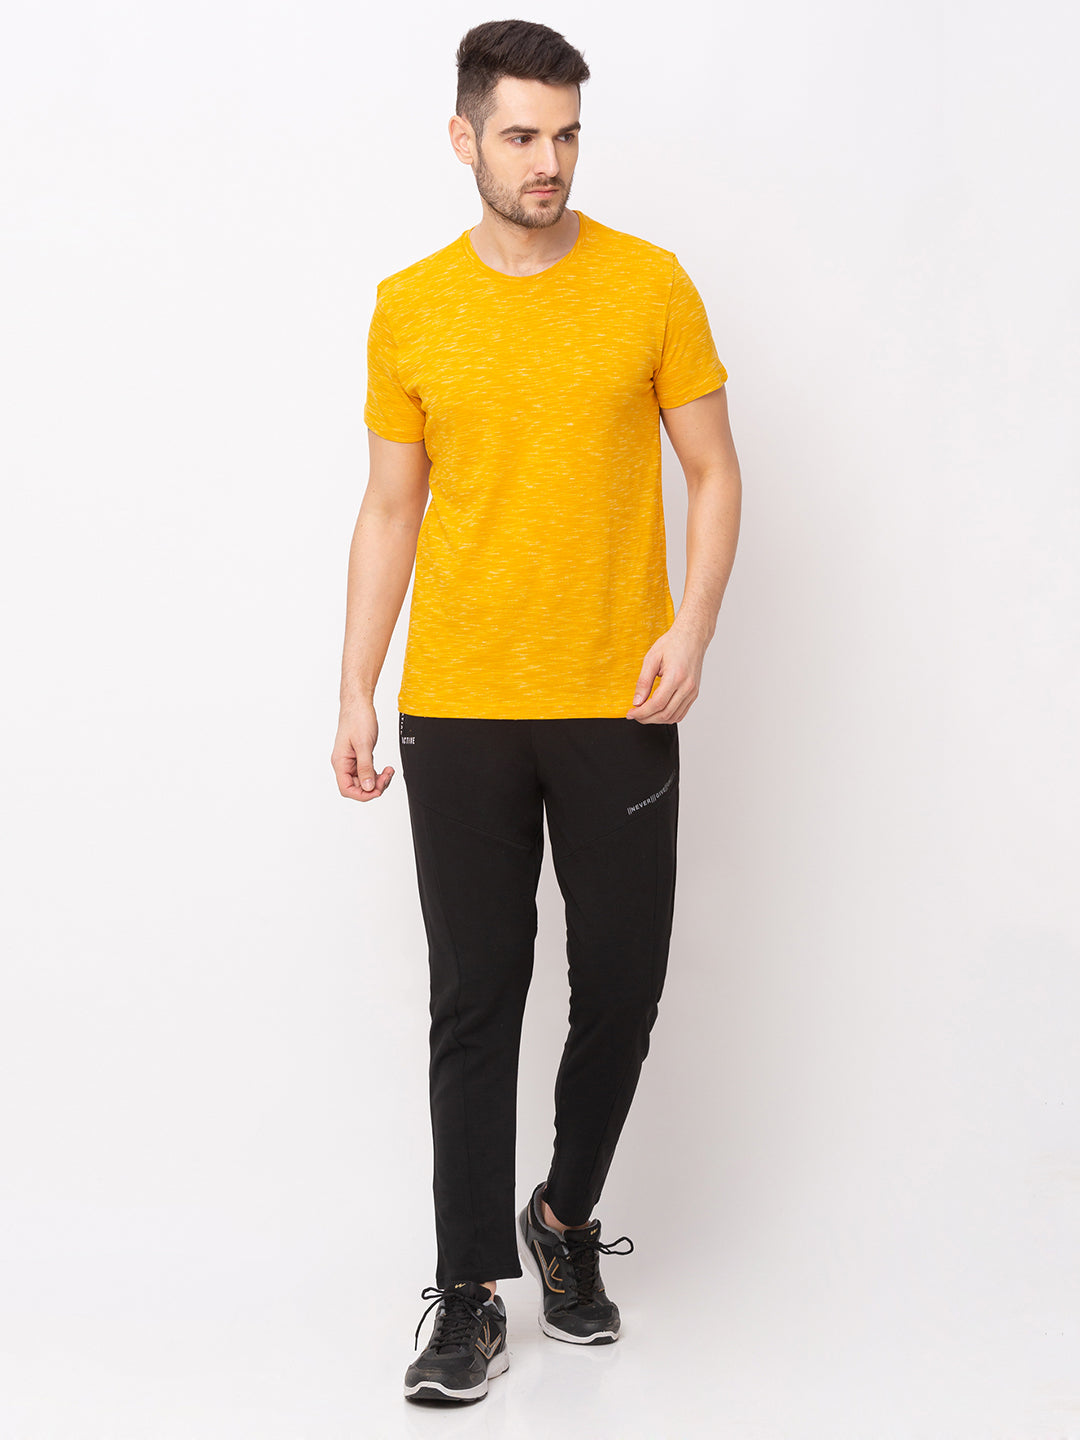 Globus Yellow Solid T-Shirt-5